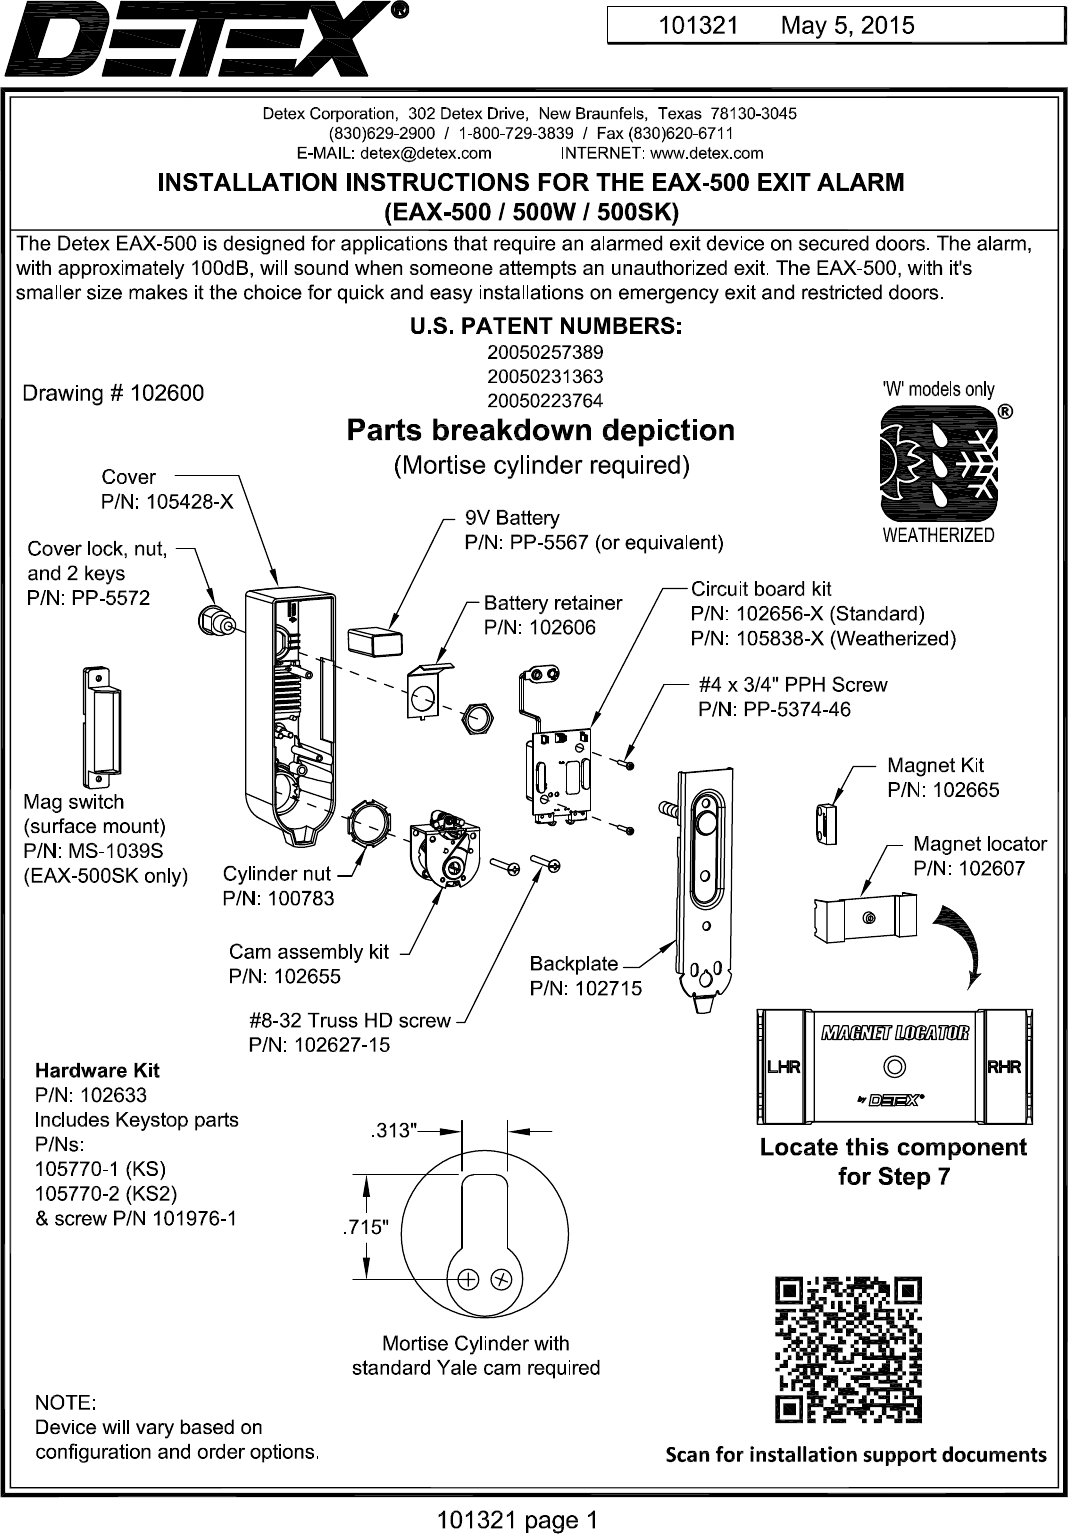 [DIAGRAM_34OR]  Detex EAX 500 Installation Instructions 101321Press Quality | Detex Wiring Diagrams |  | UserManual.wiki